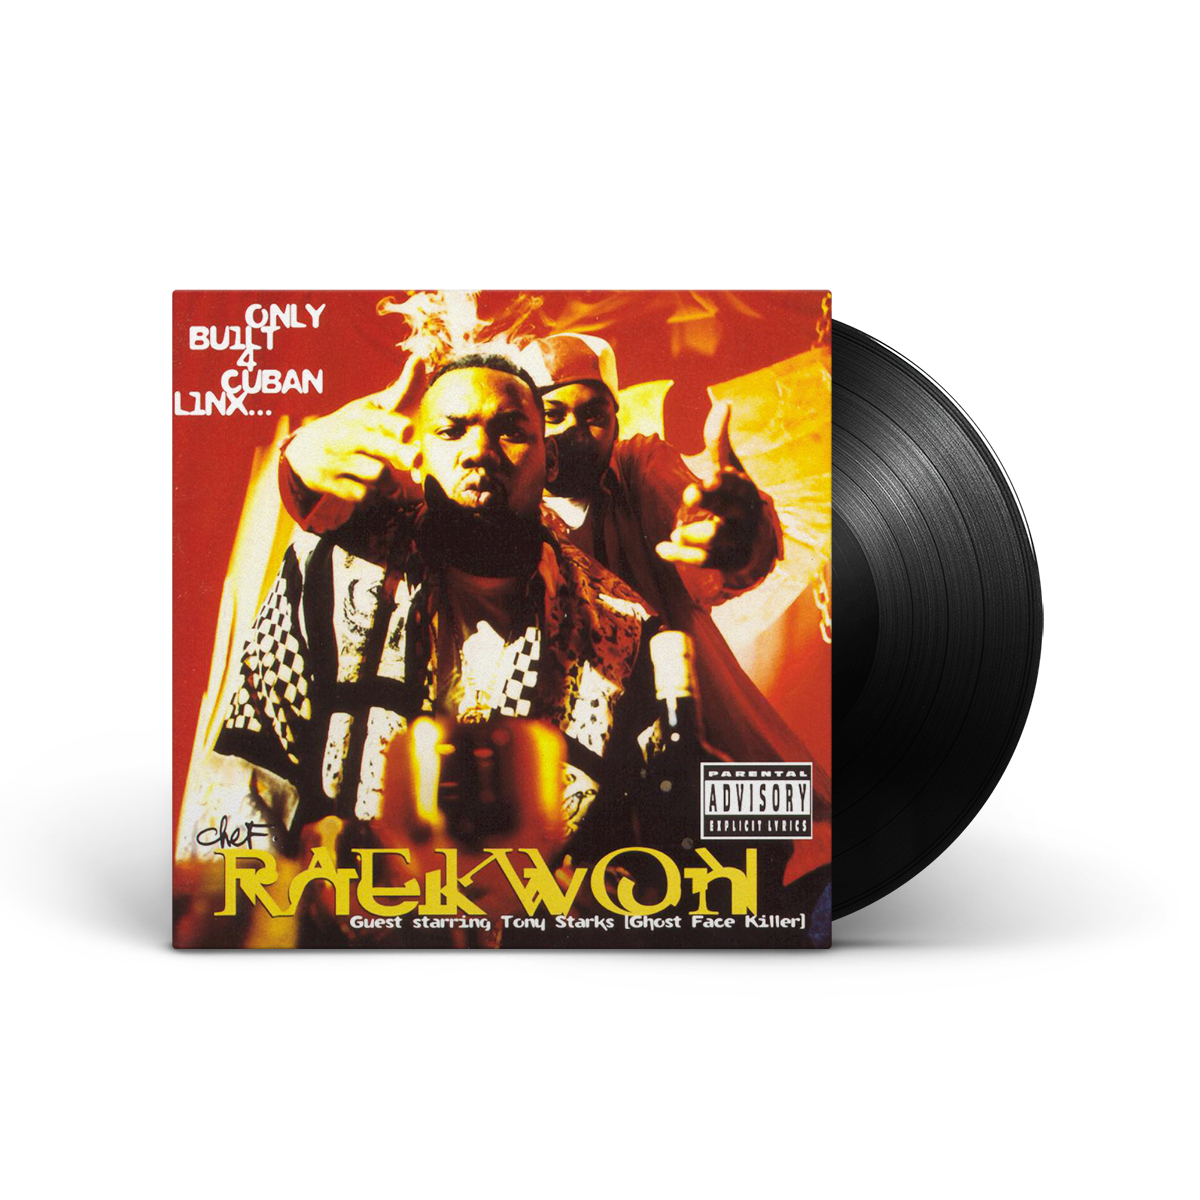 Raekwon - Only Built 4 Cuban Linx LP